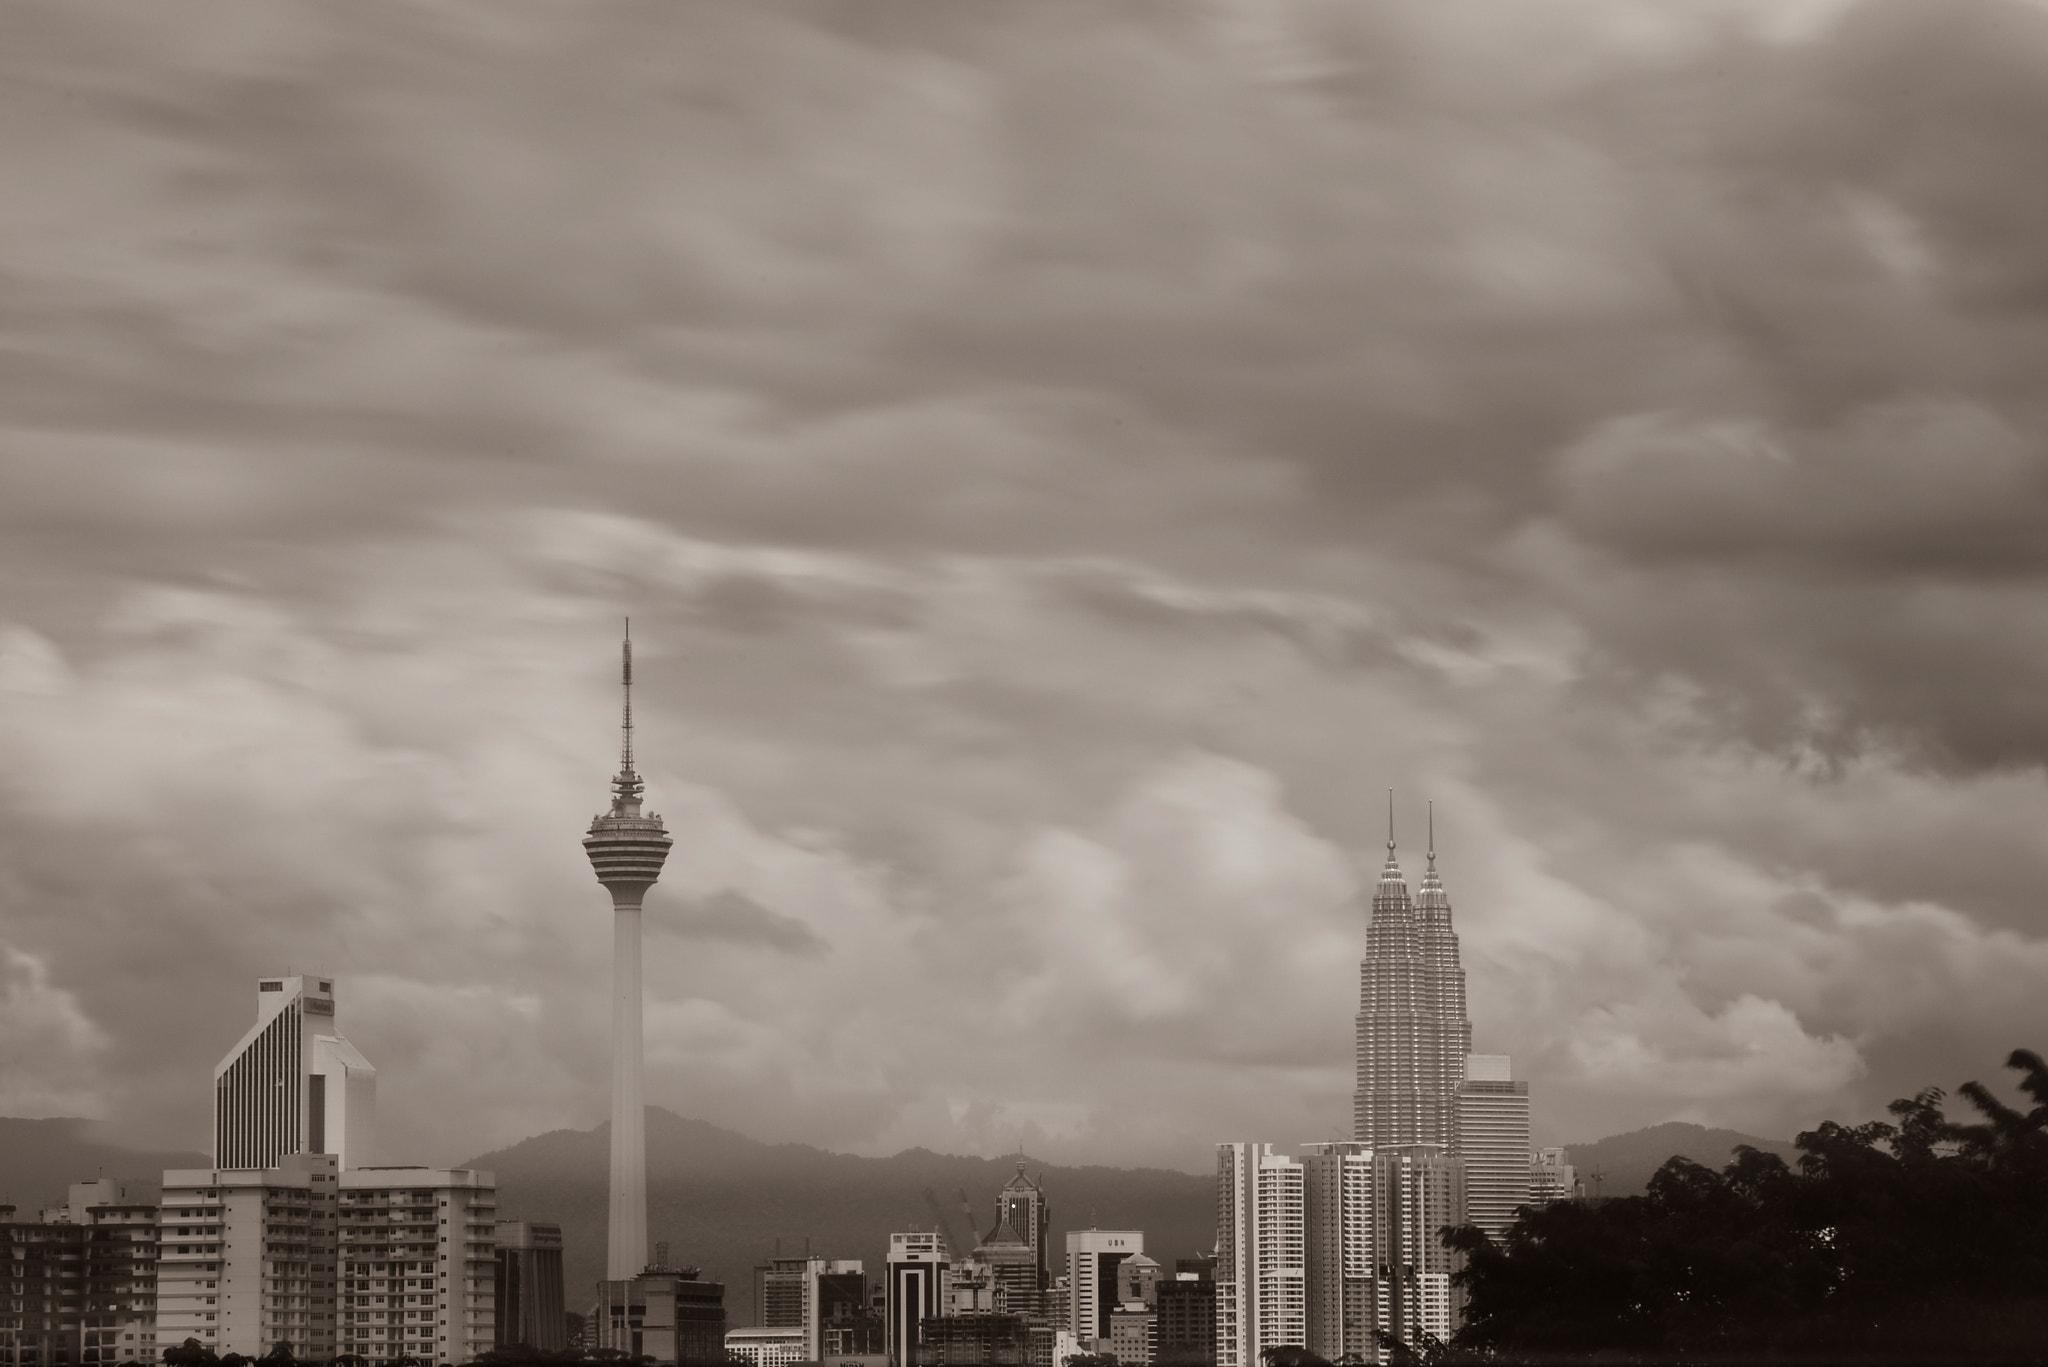 Photograph Kuala Lumpur by Fred Melot on 500px